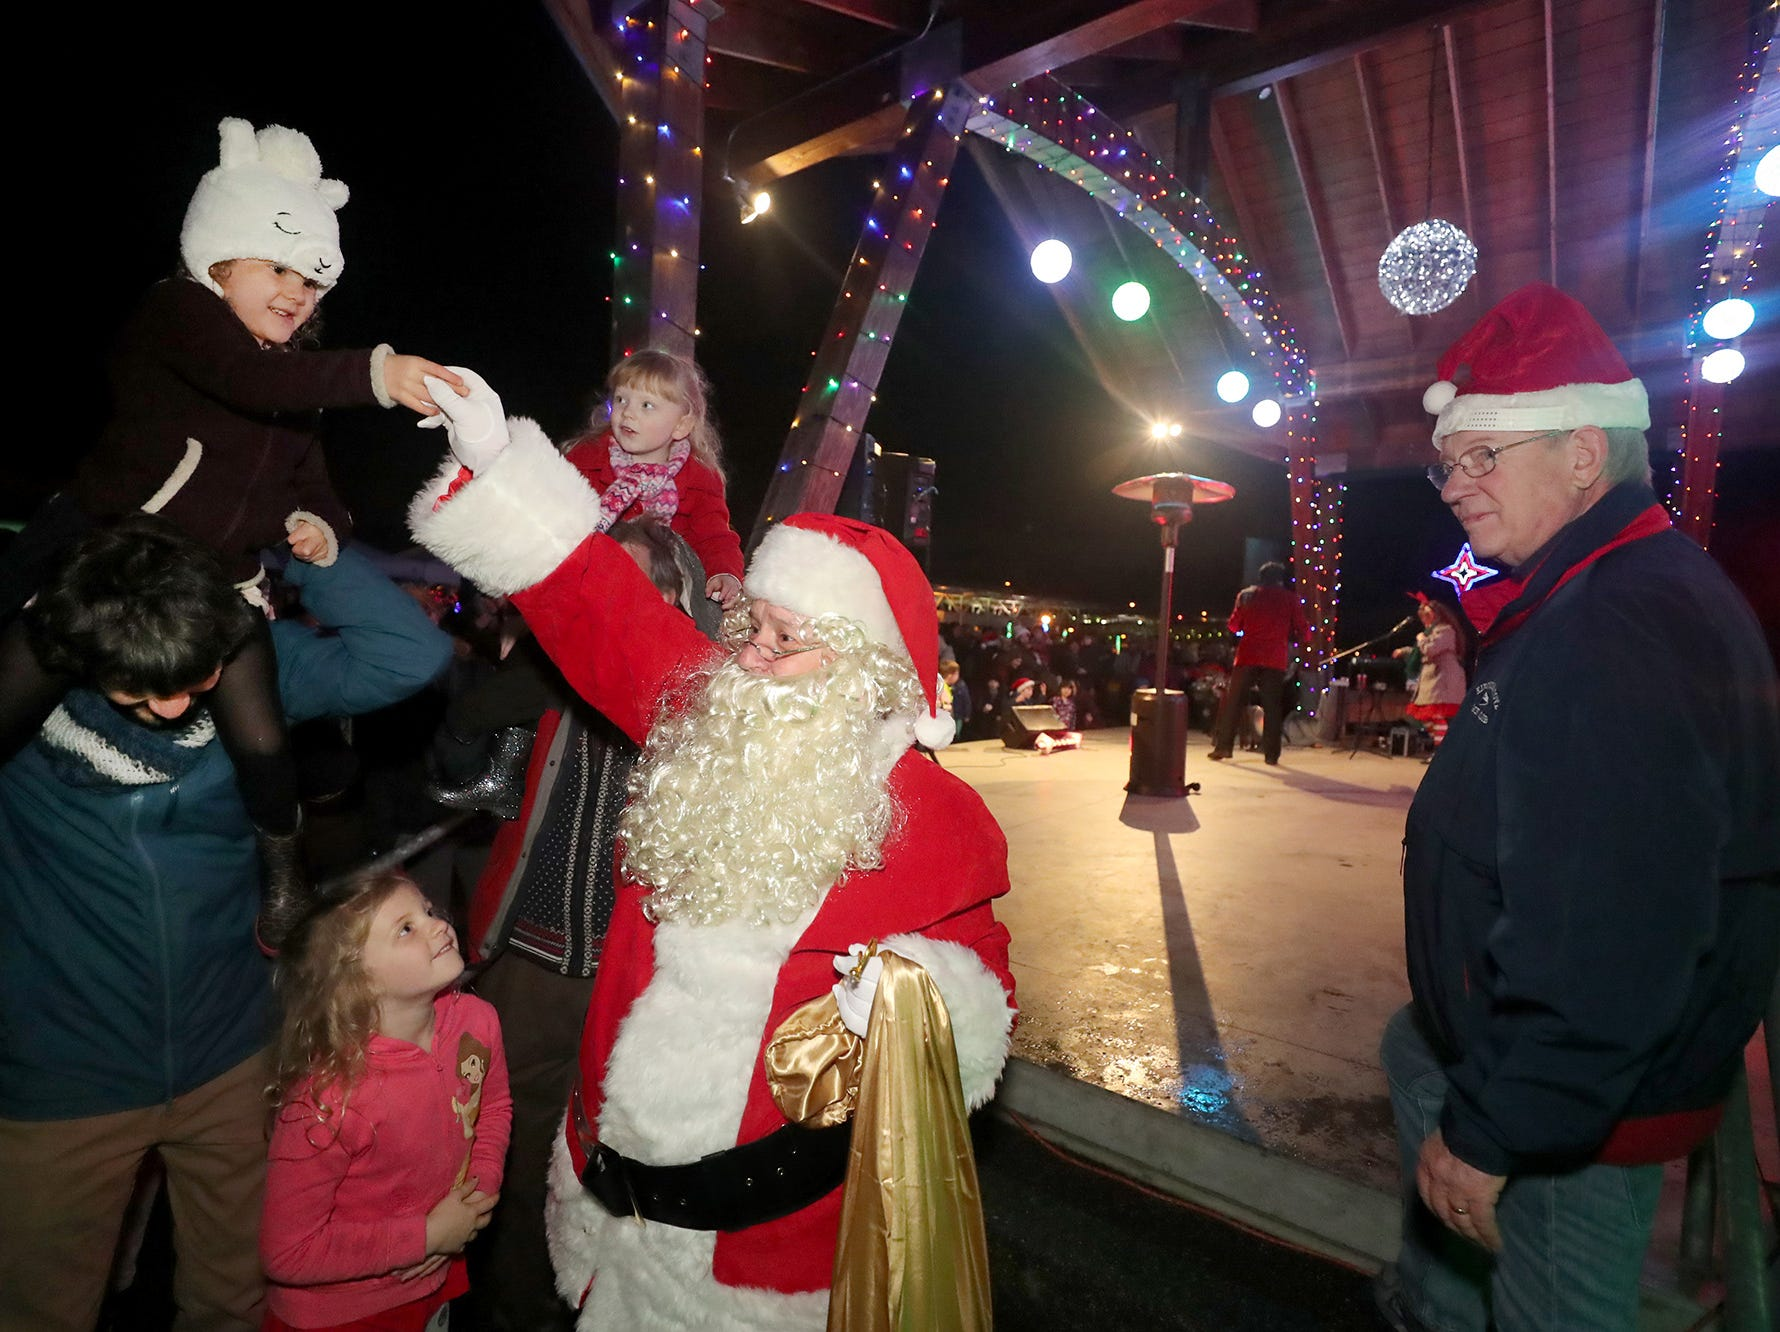 The Kingston Cove Christmas celebration on Saturday, December 1, 2018, at Mike Wallace Park in Kingston.The highlight of the event was the arrival of Santa and the Christmas tree, and park lighting.